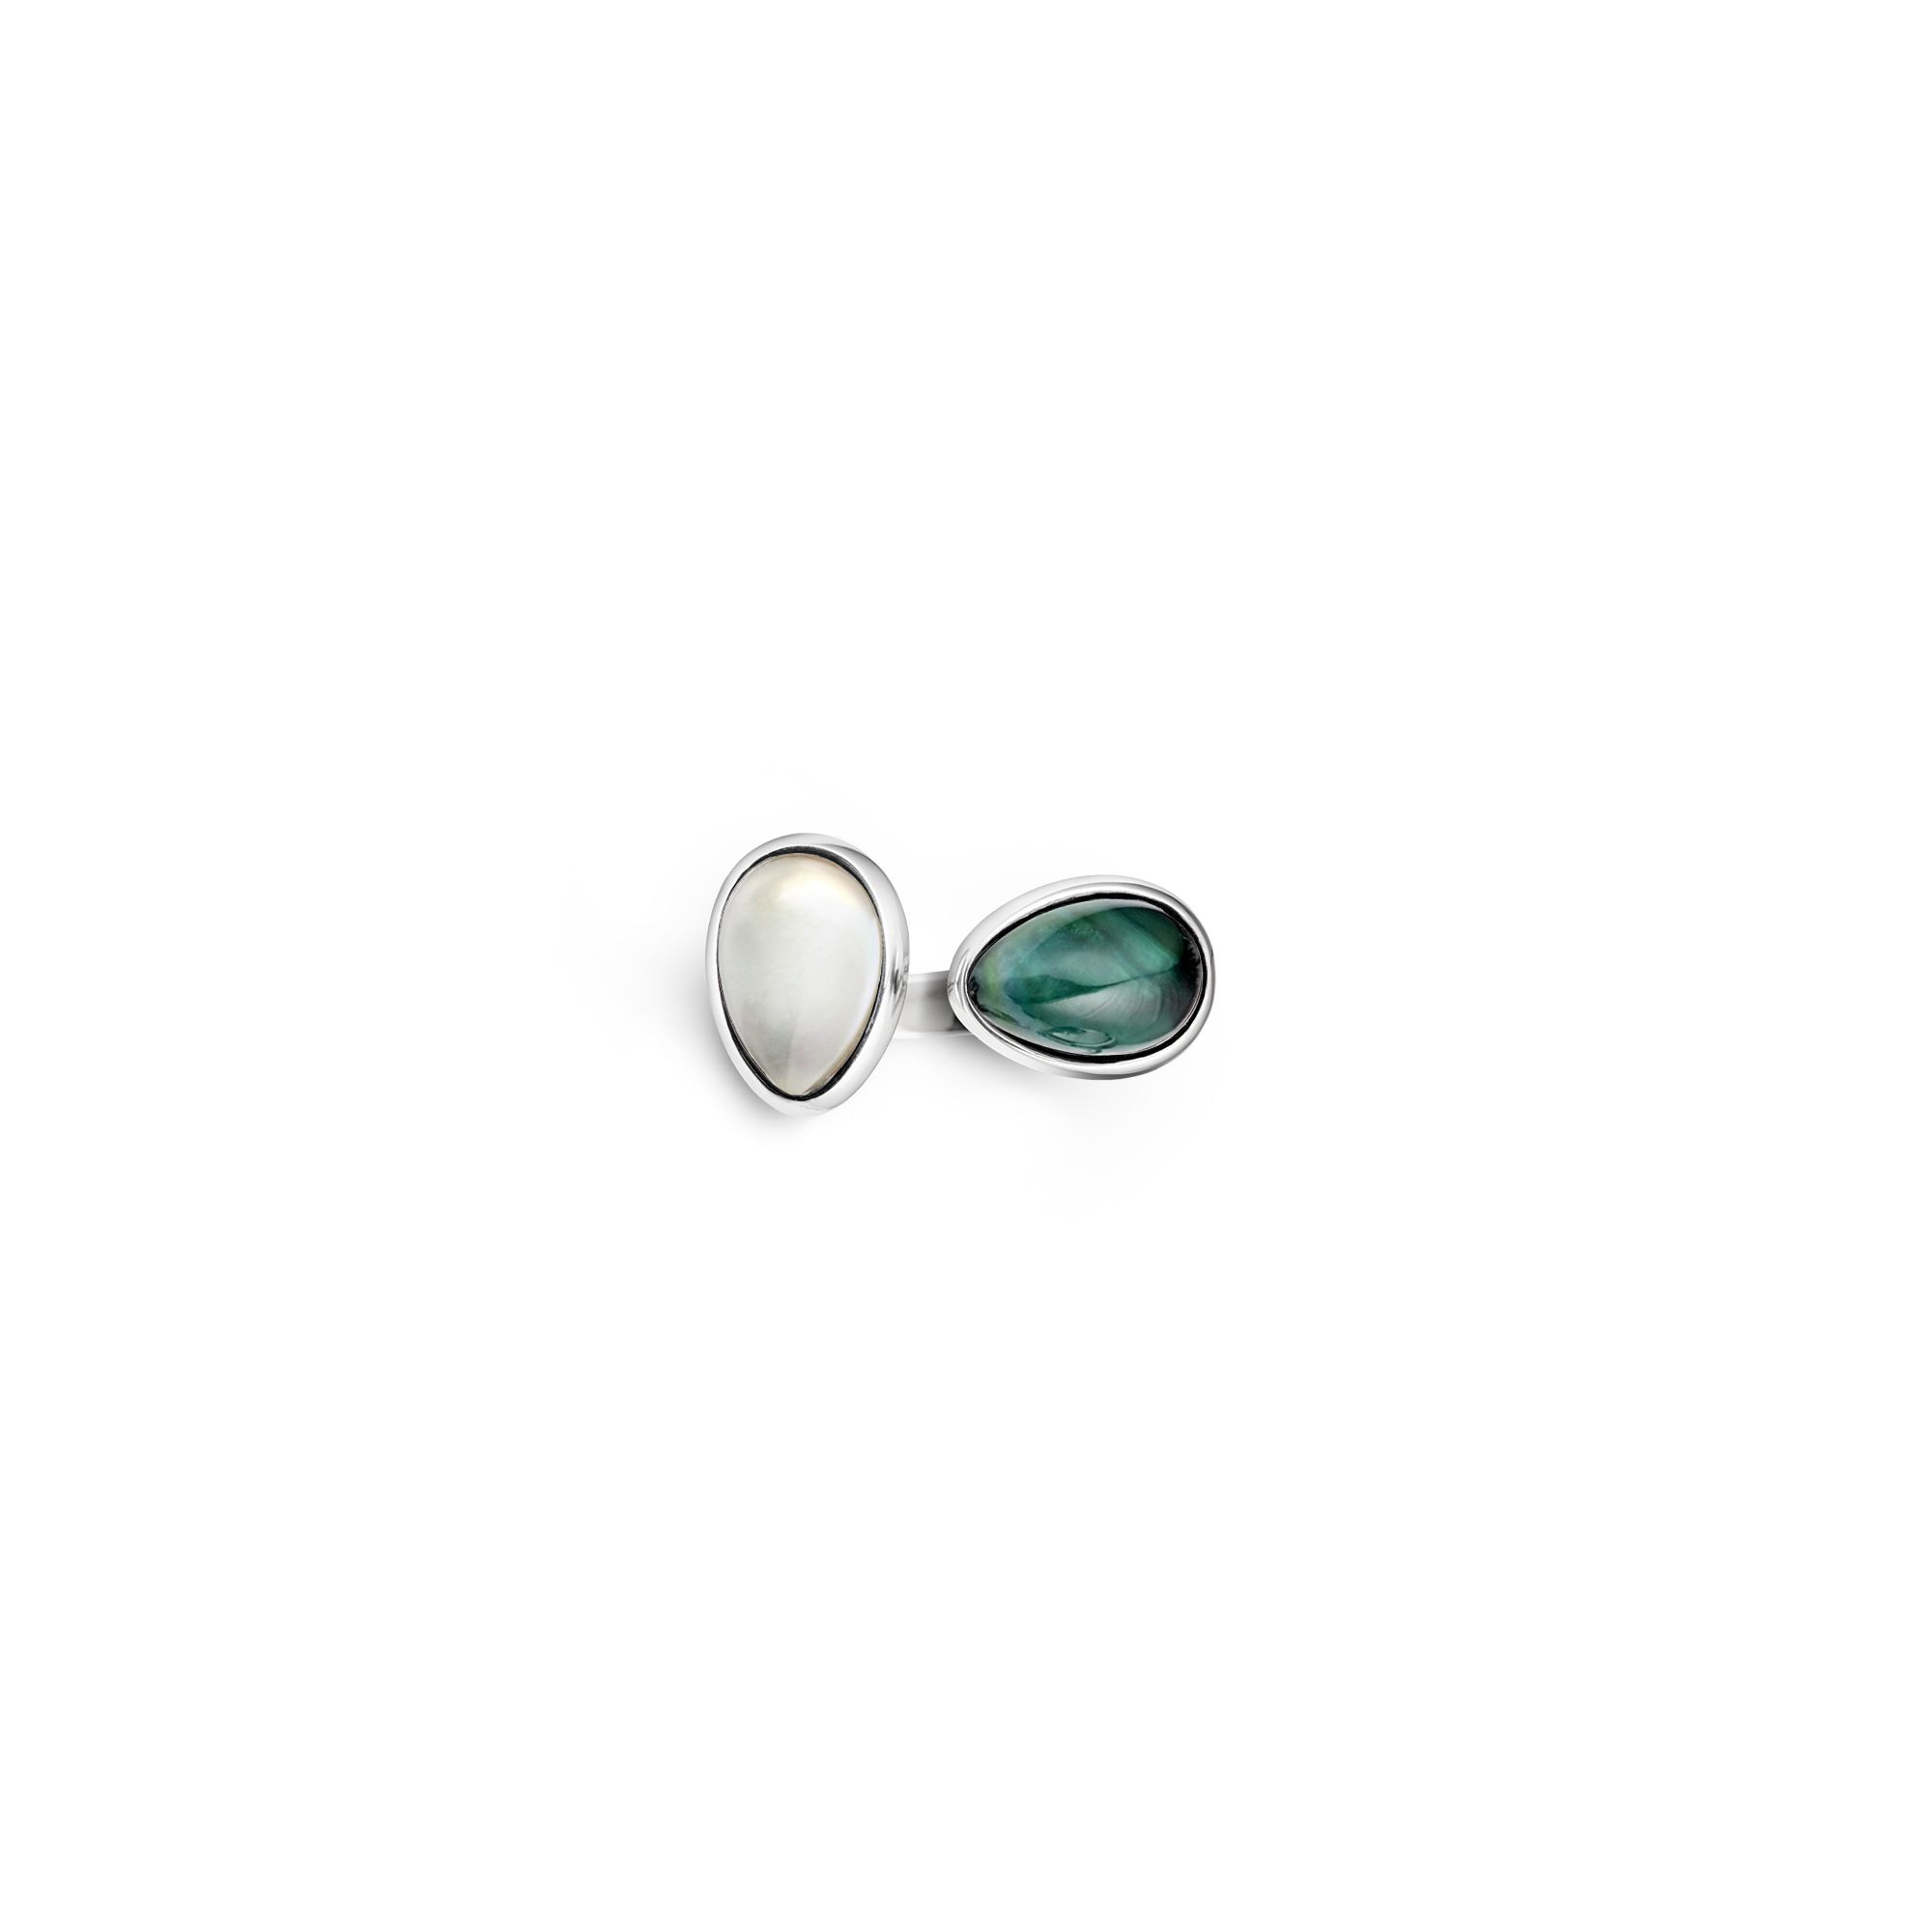 2 element green|white 'Drop' ring Silver ring with stones